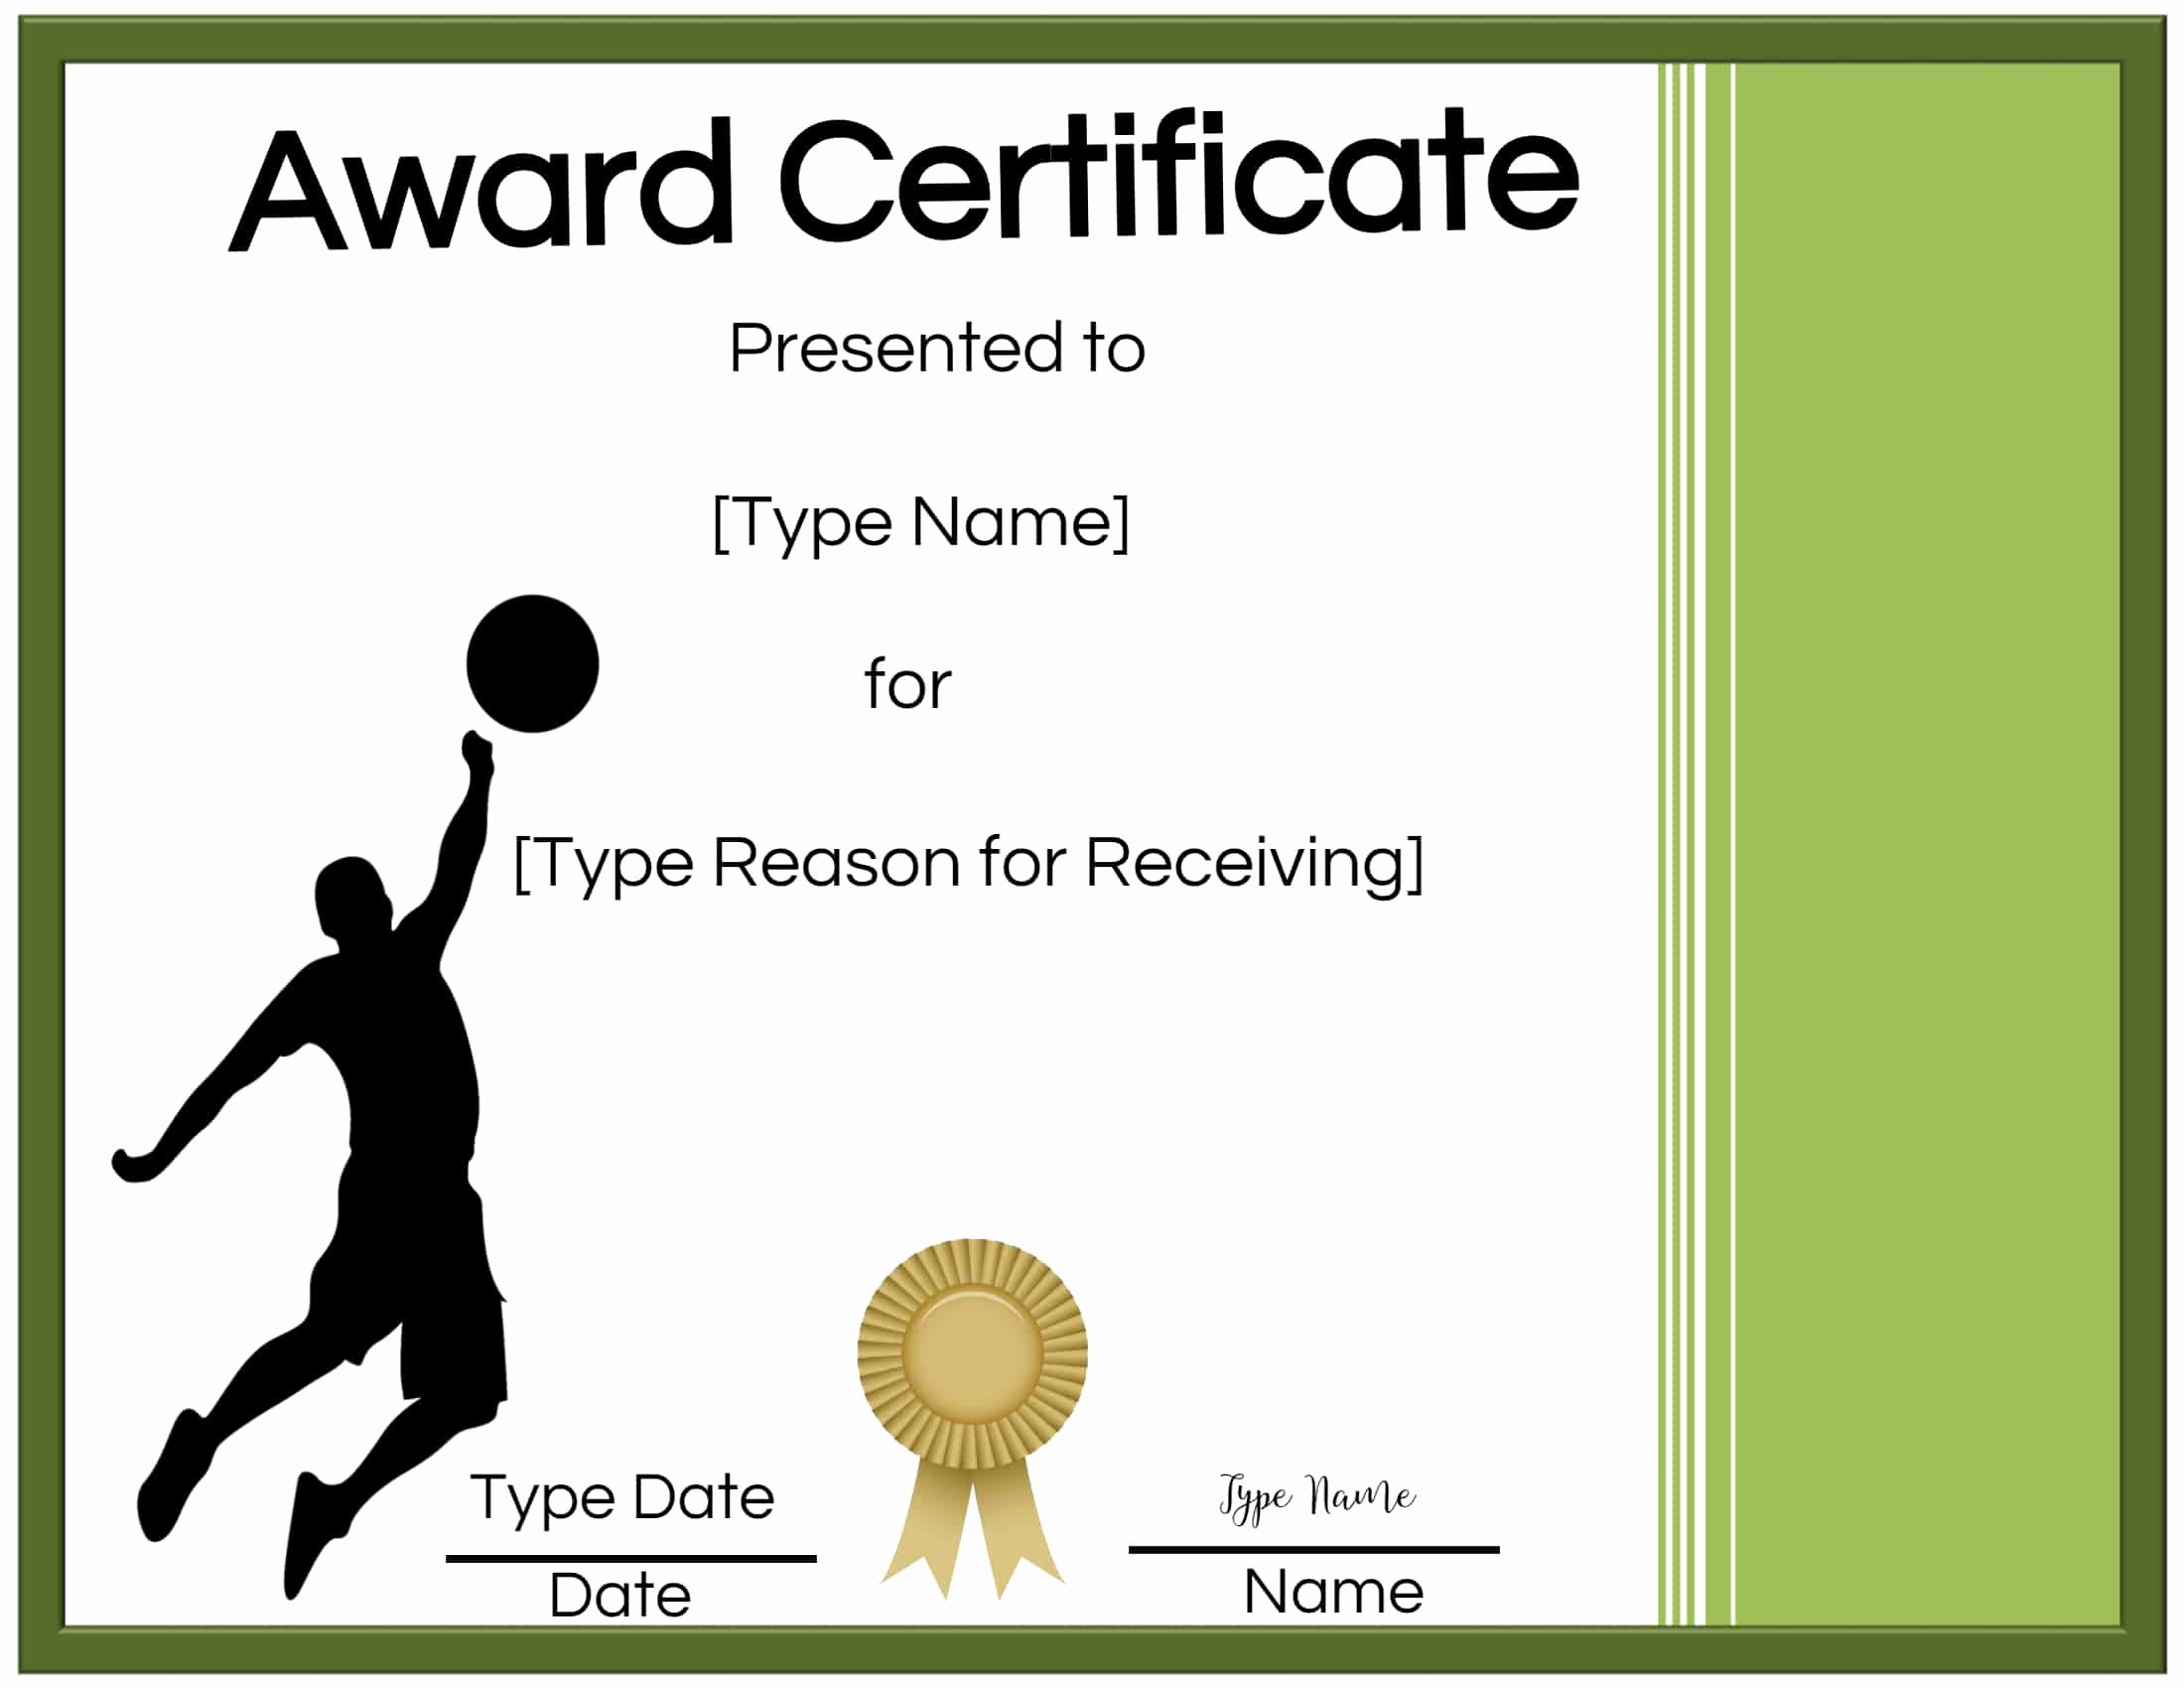 20 Volleyball Certificate Template Free ™  Dannybarrantes throughout Amazing Volleyball Award Certificate Template Free